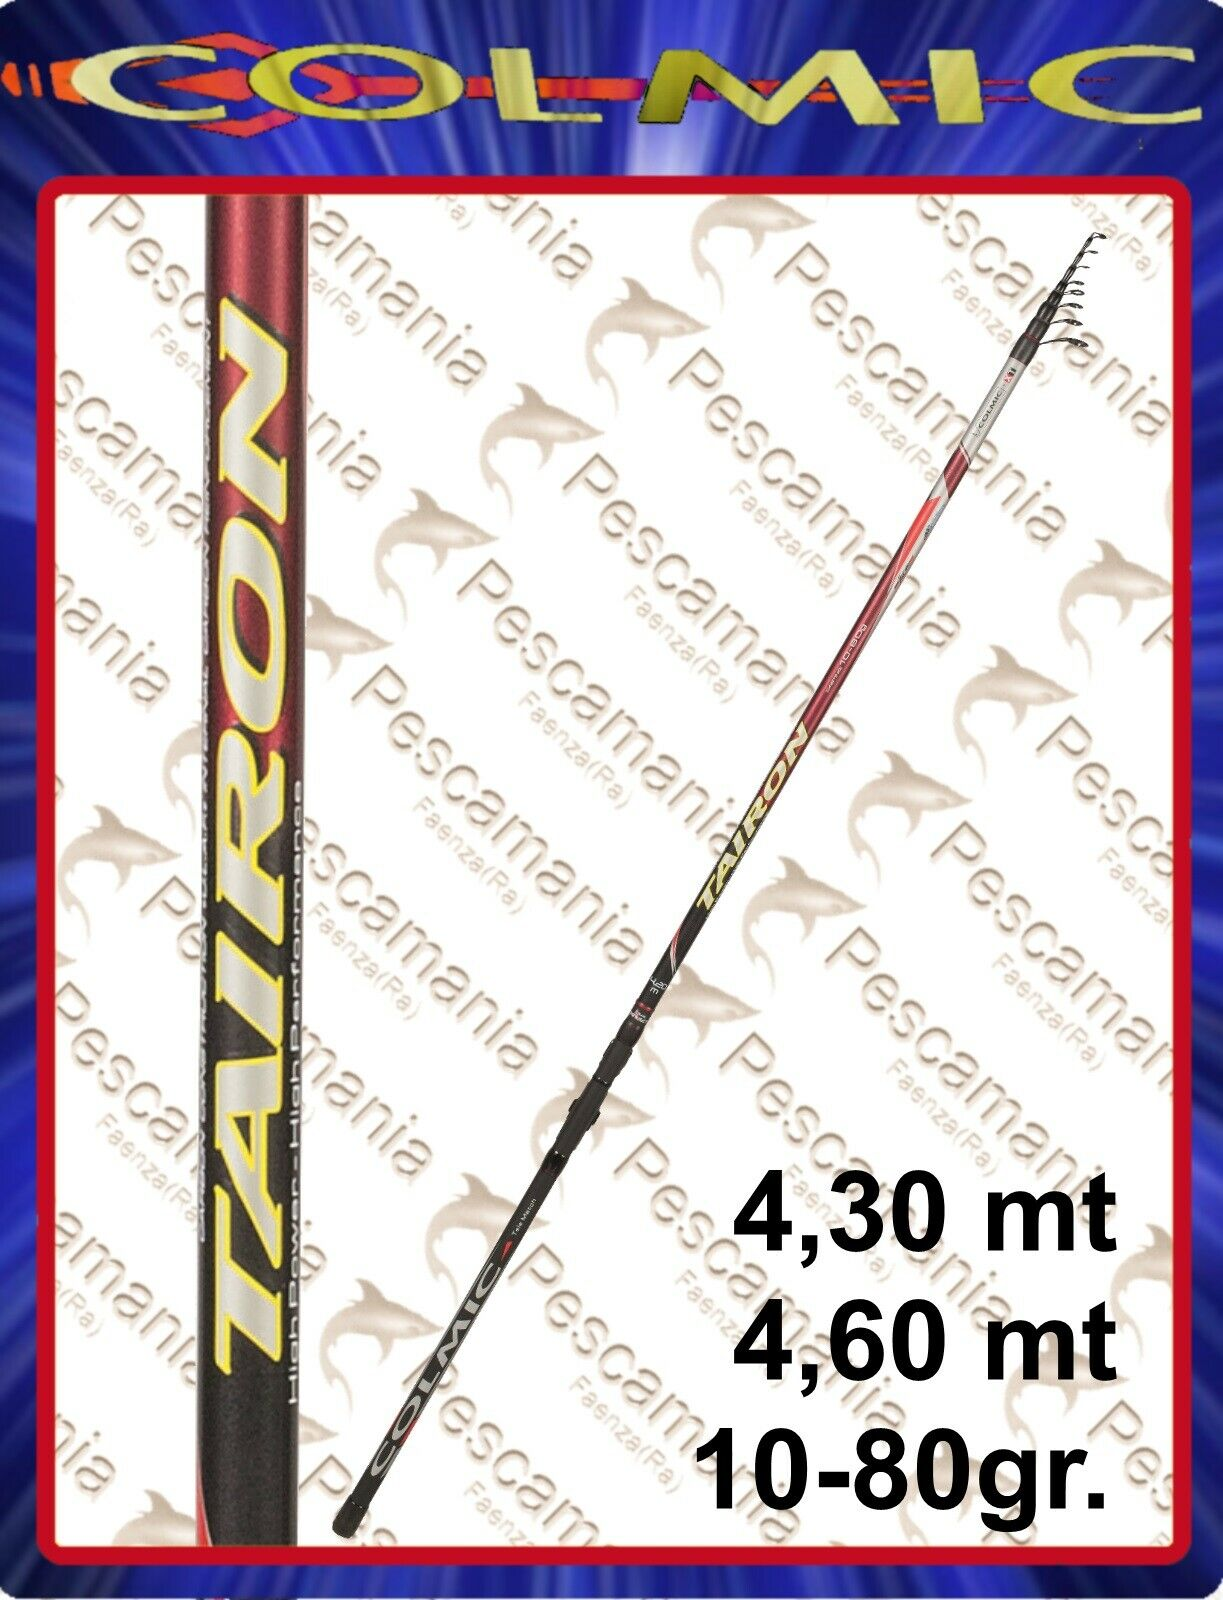 Canna Colmic TAIRON Telematch gr gr gr 10-80 4,30-4,60 Pro Force Carbon 3a5b95